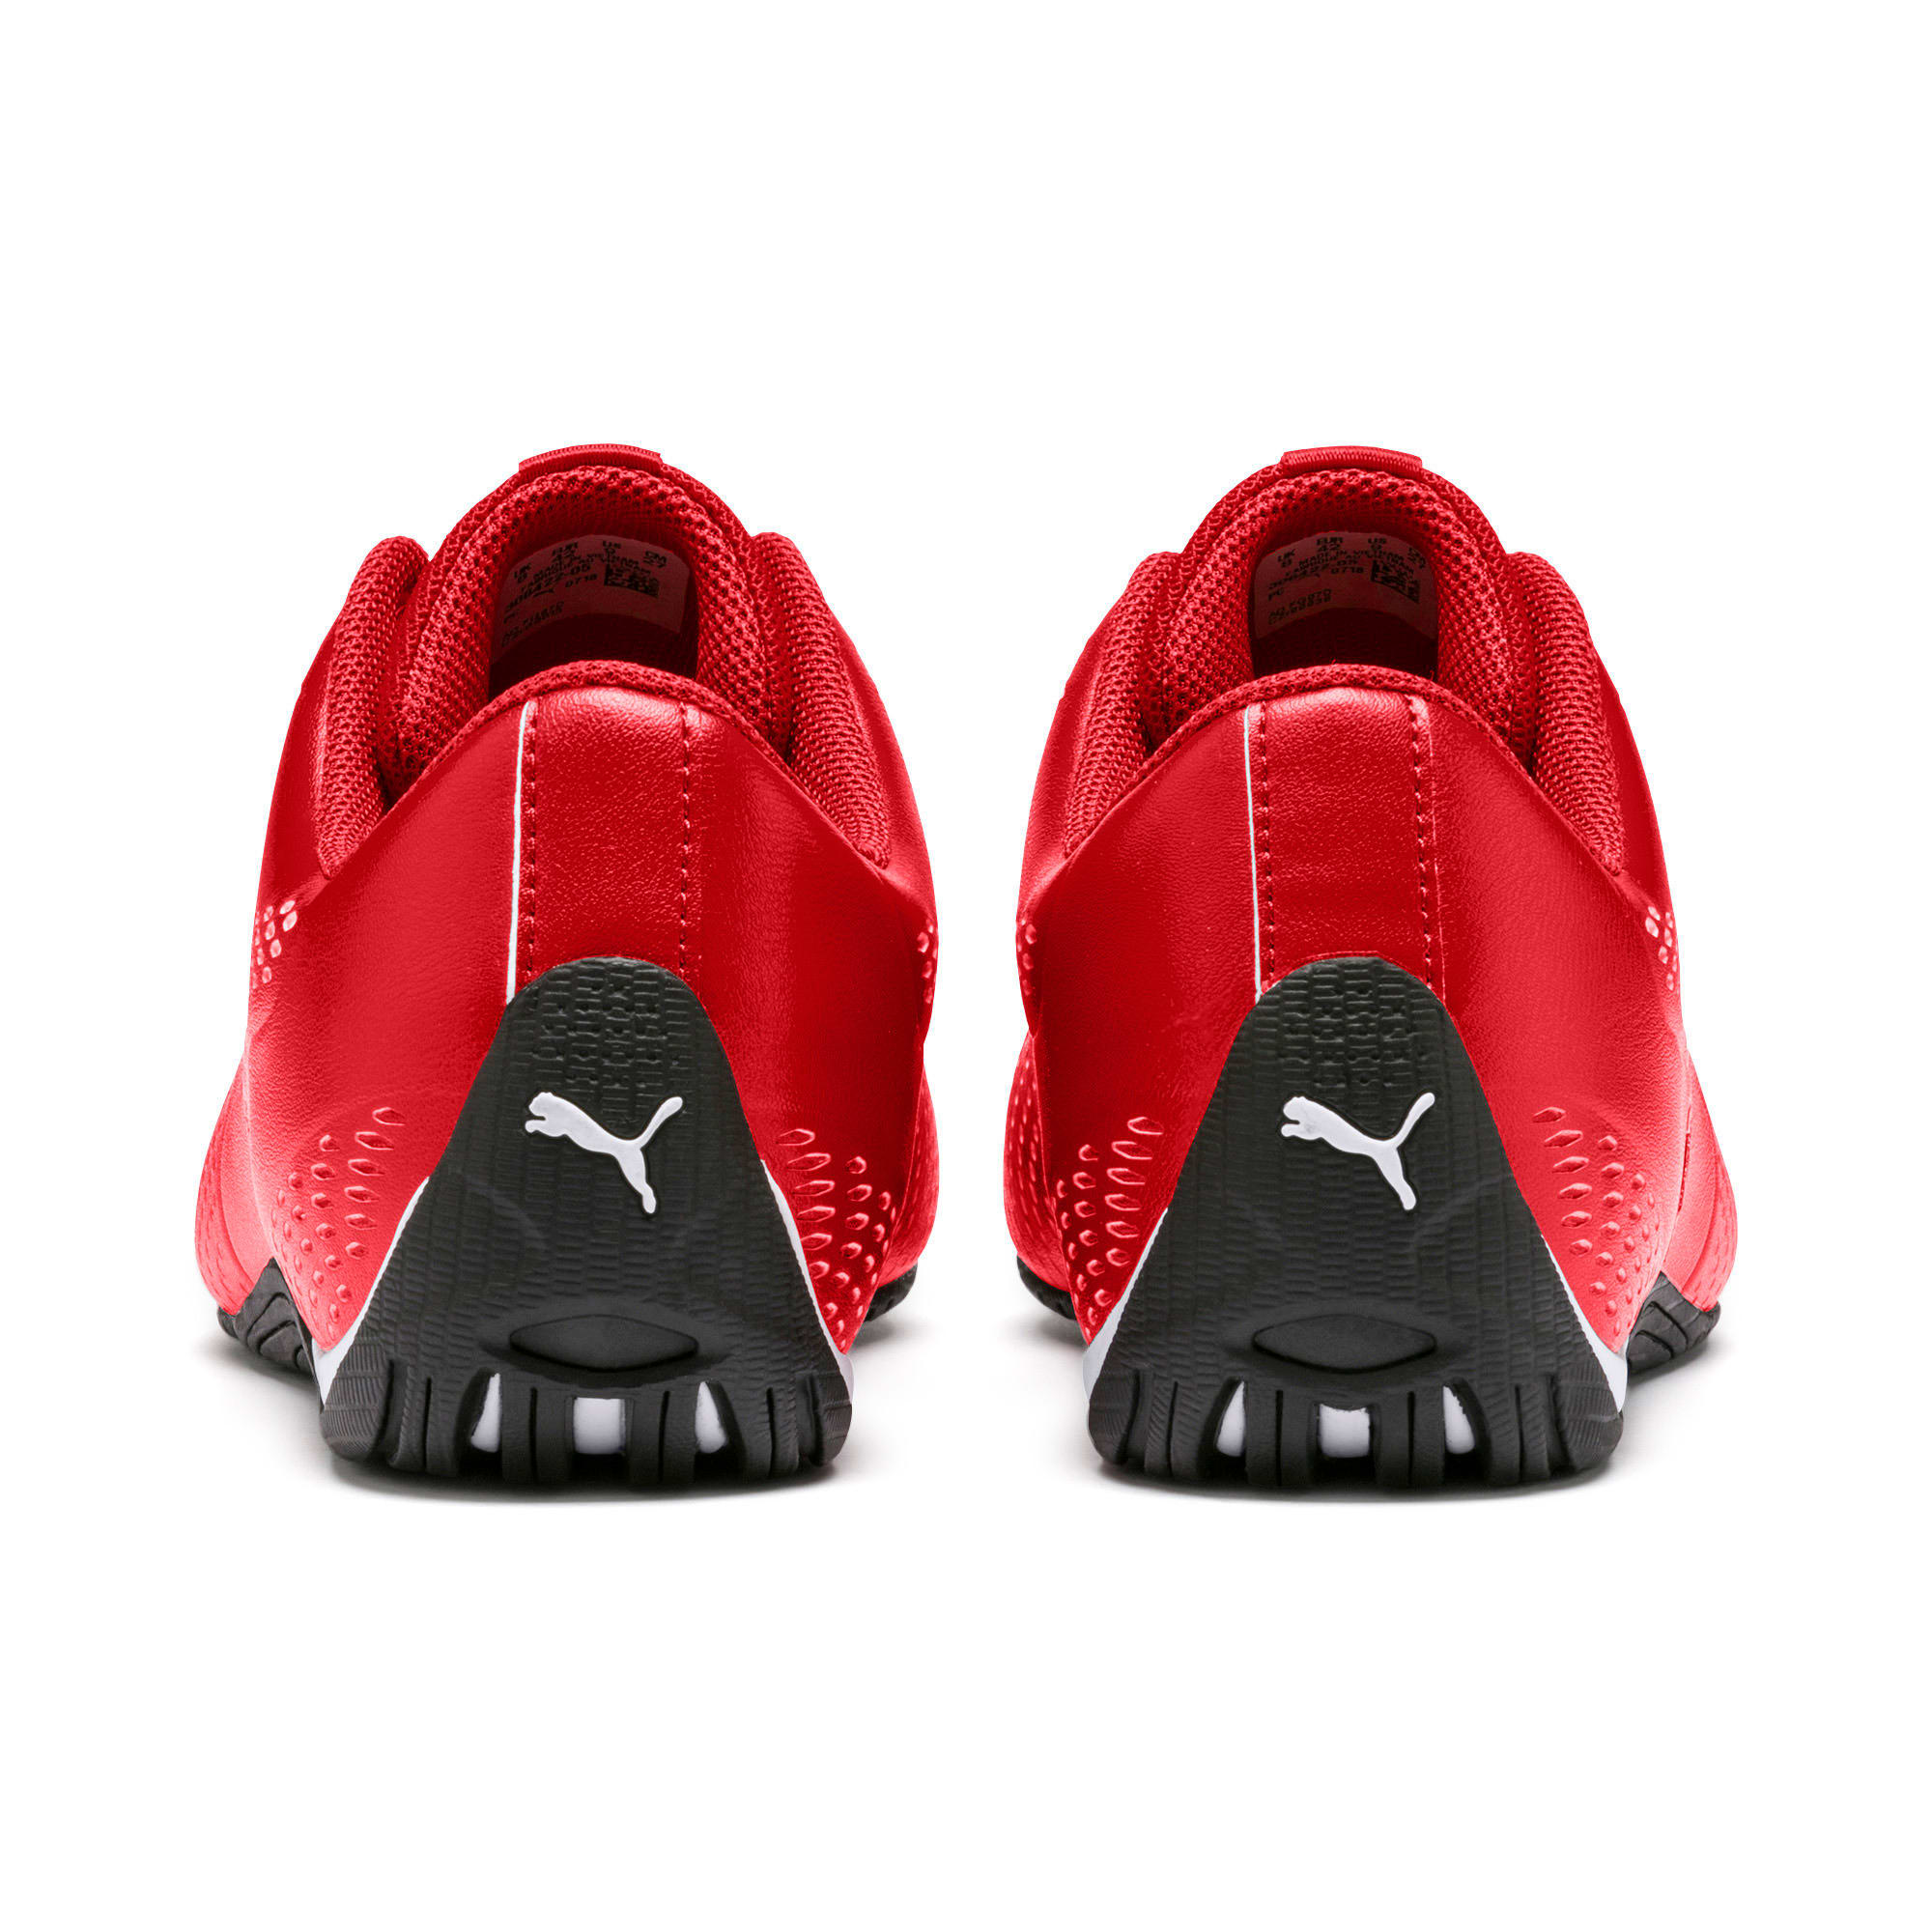 Thumbnail 4 of Ferrari Drift Cat 5 Ultra II Sneaker, Rosso Corsa-Puma White, medium